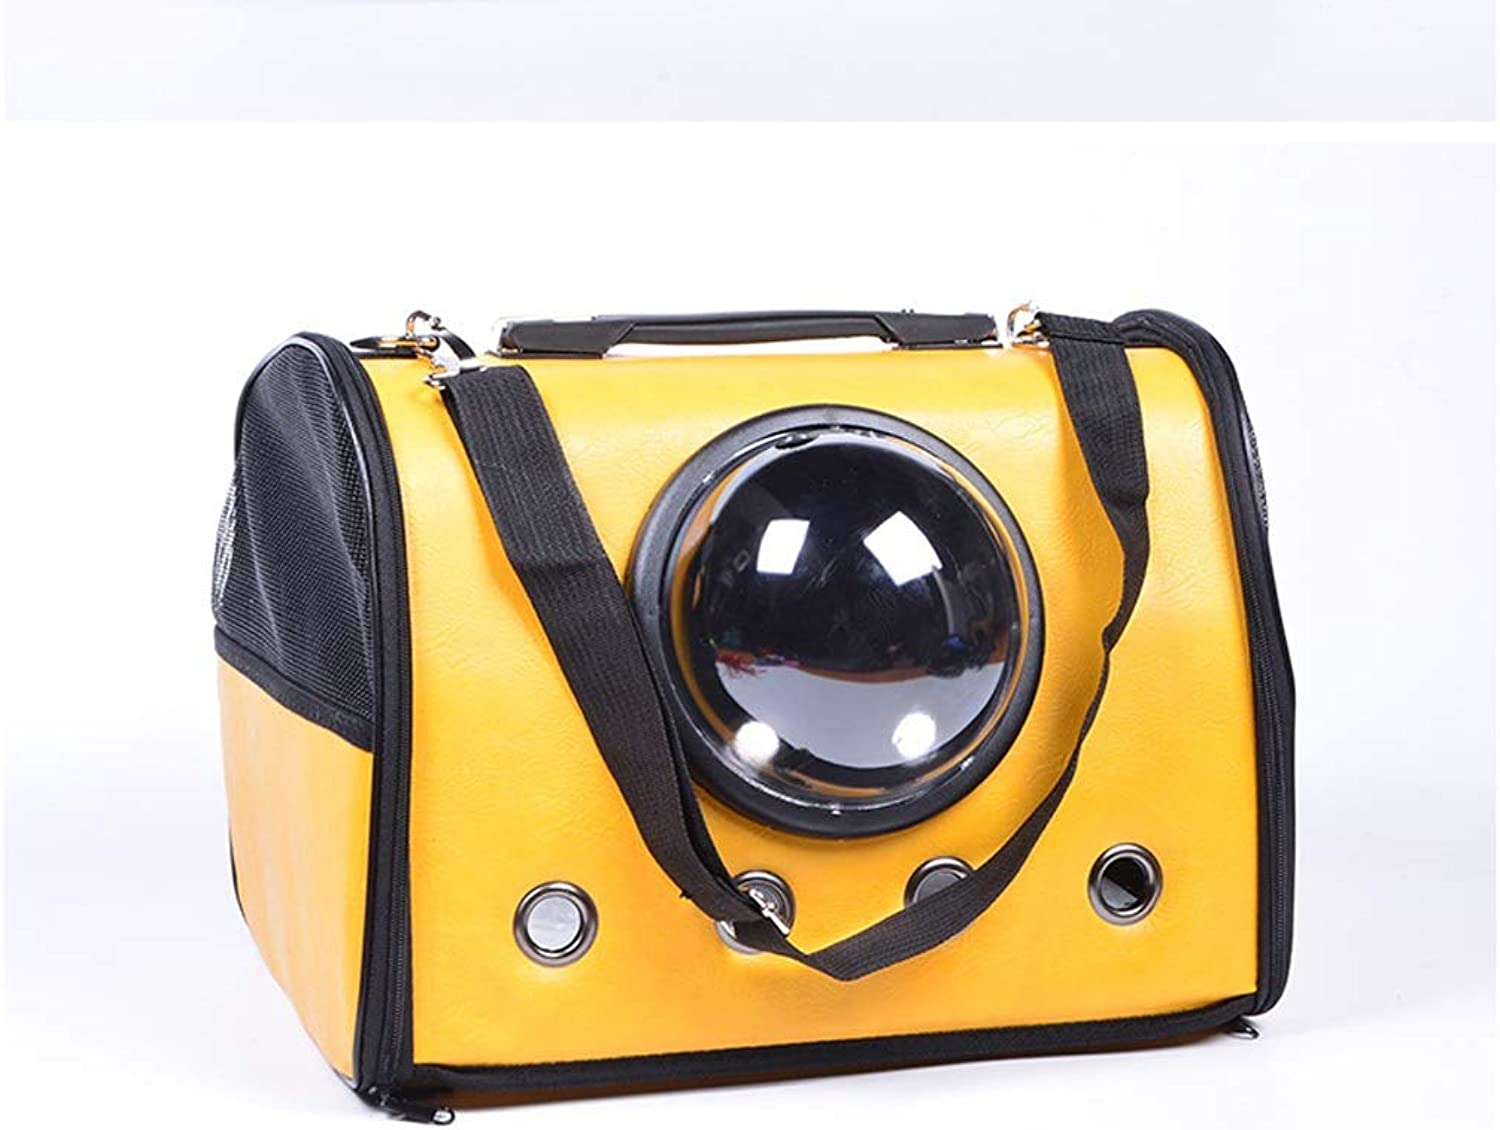 Pet Travel Bag Pet Supplies Travel Bag Fashion Large Hole Breathable Portable Space Pet Cabin Breathable Cat Dog Handbag Shoulder Bag.